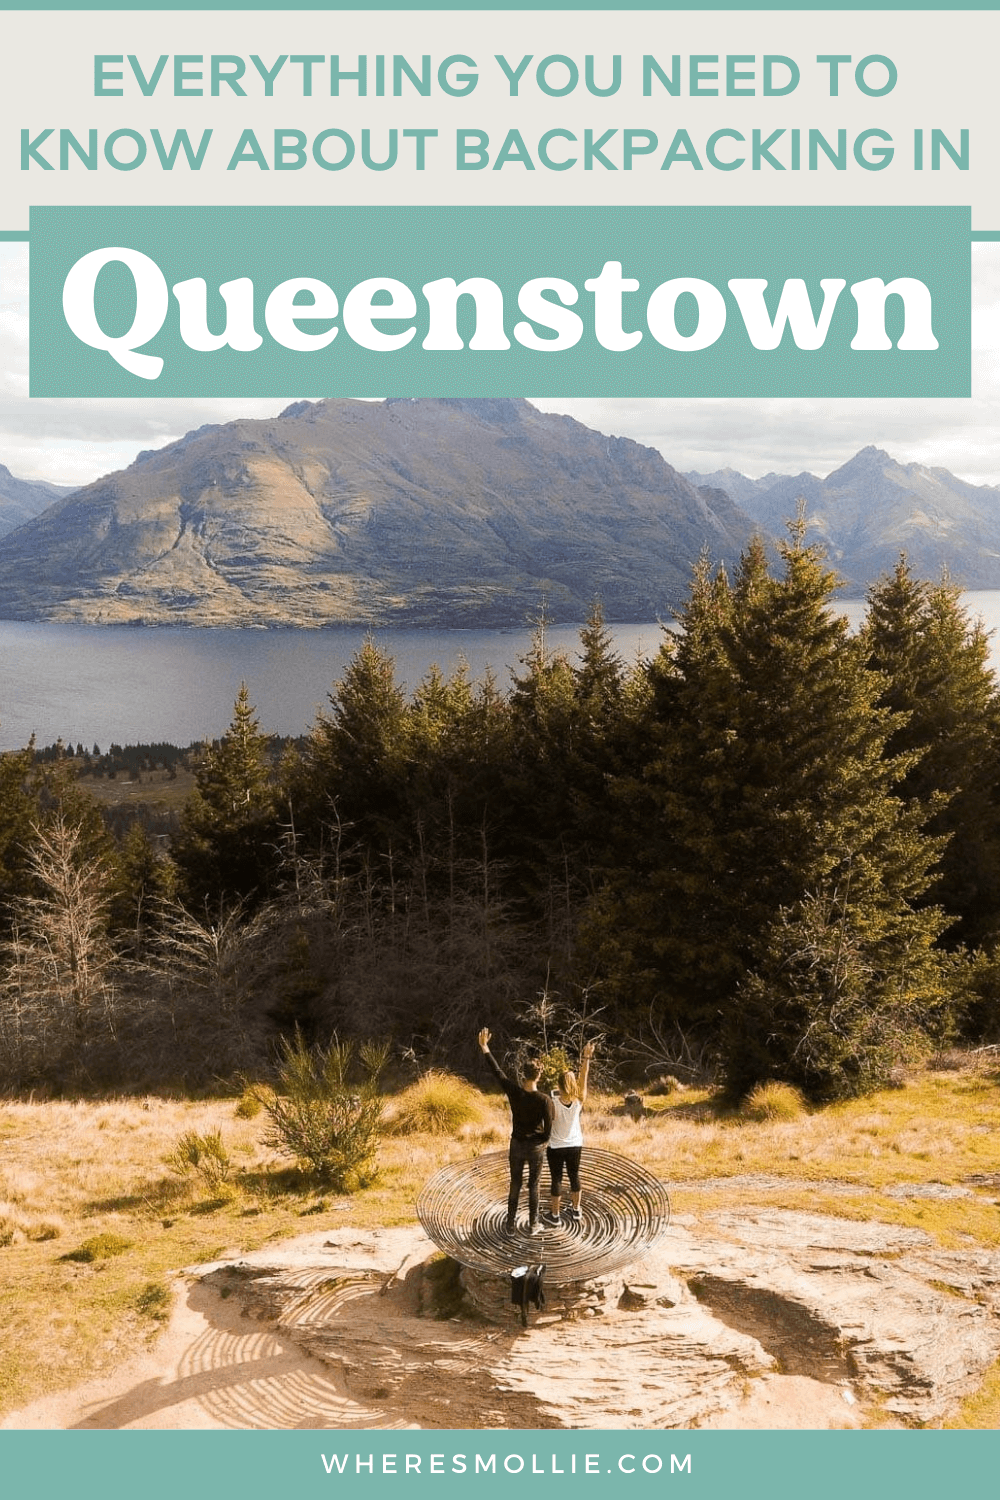 A backpacker's guide to Queenstown, New Zealand